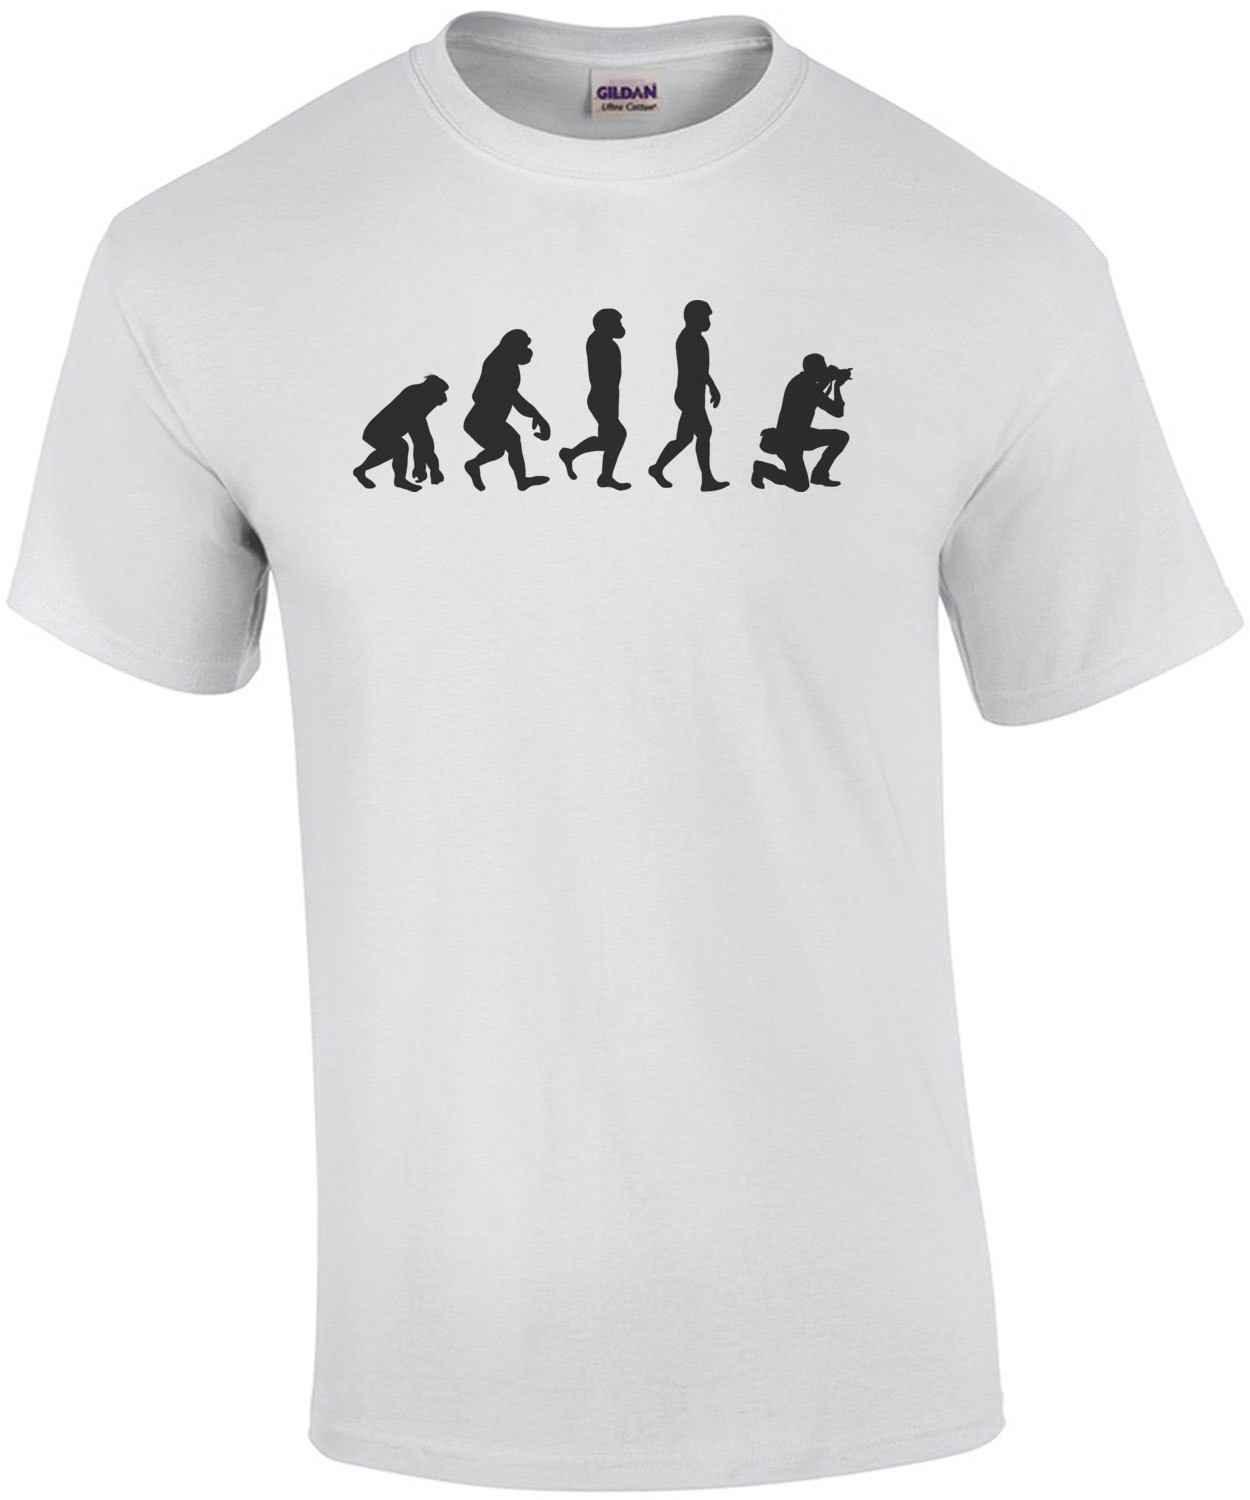 Evolution of the Photographer - T-Shirt